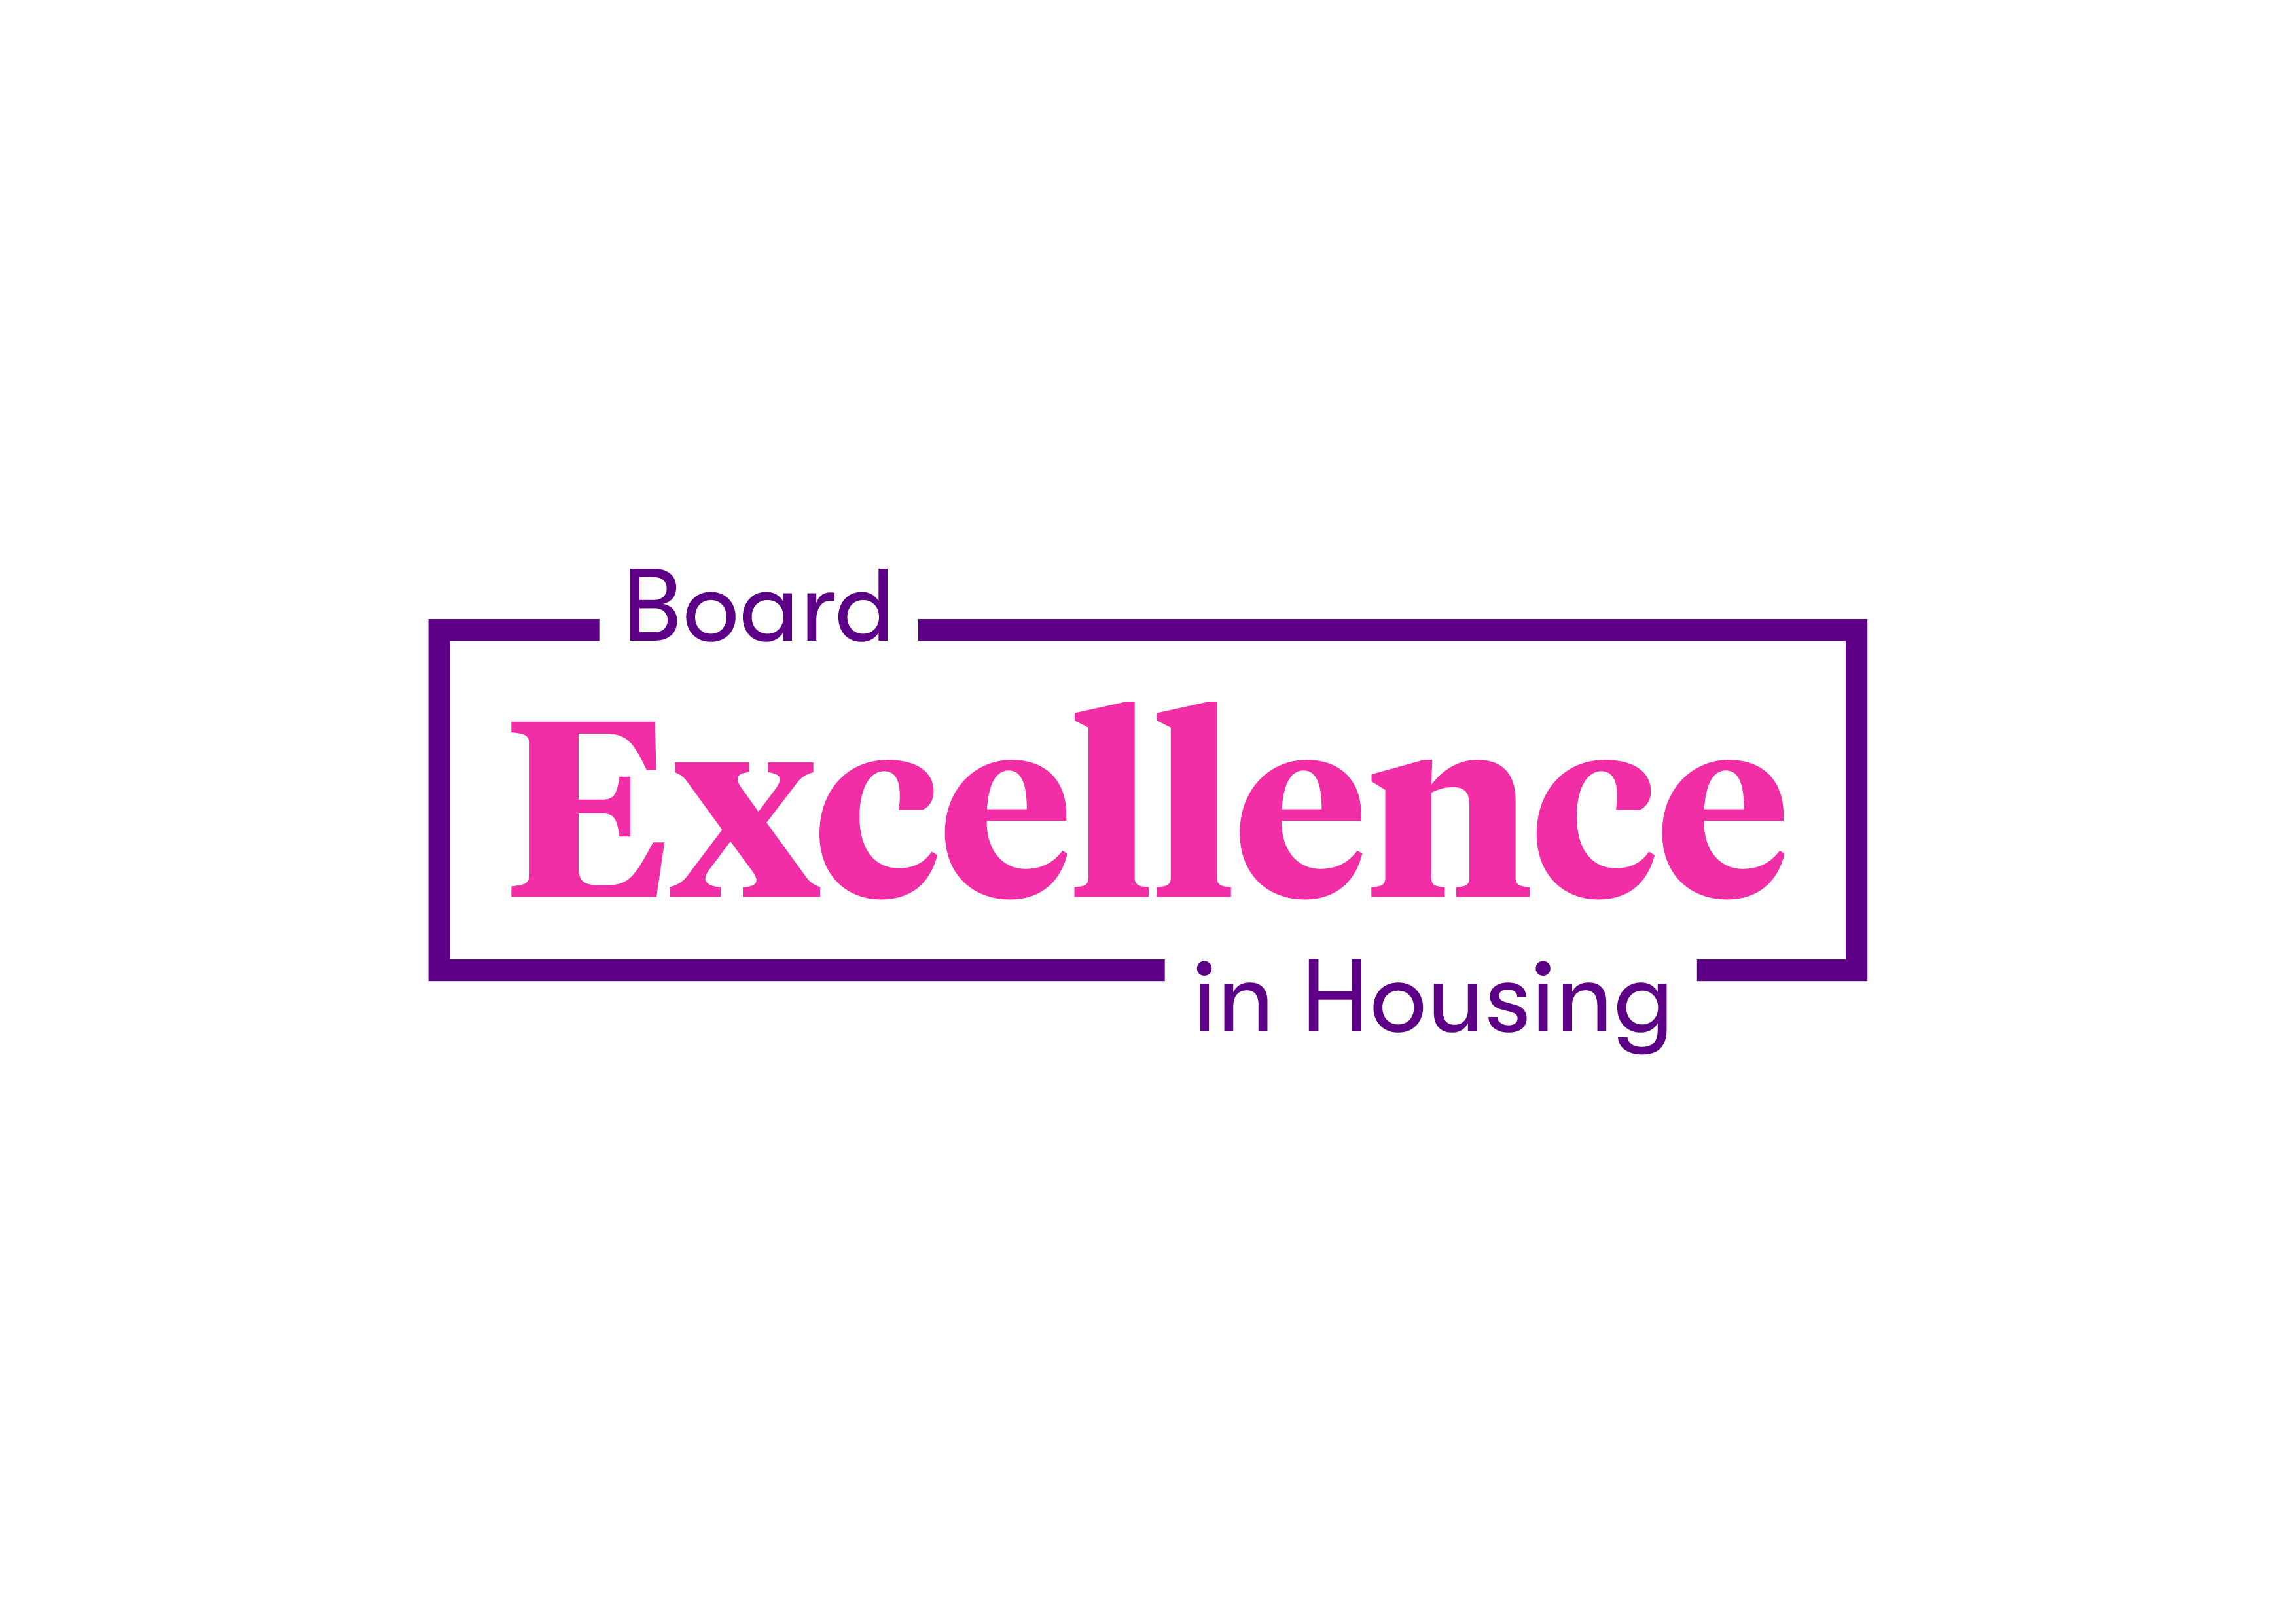 Board Excellence in Housing